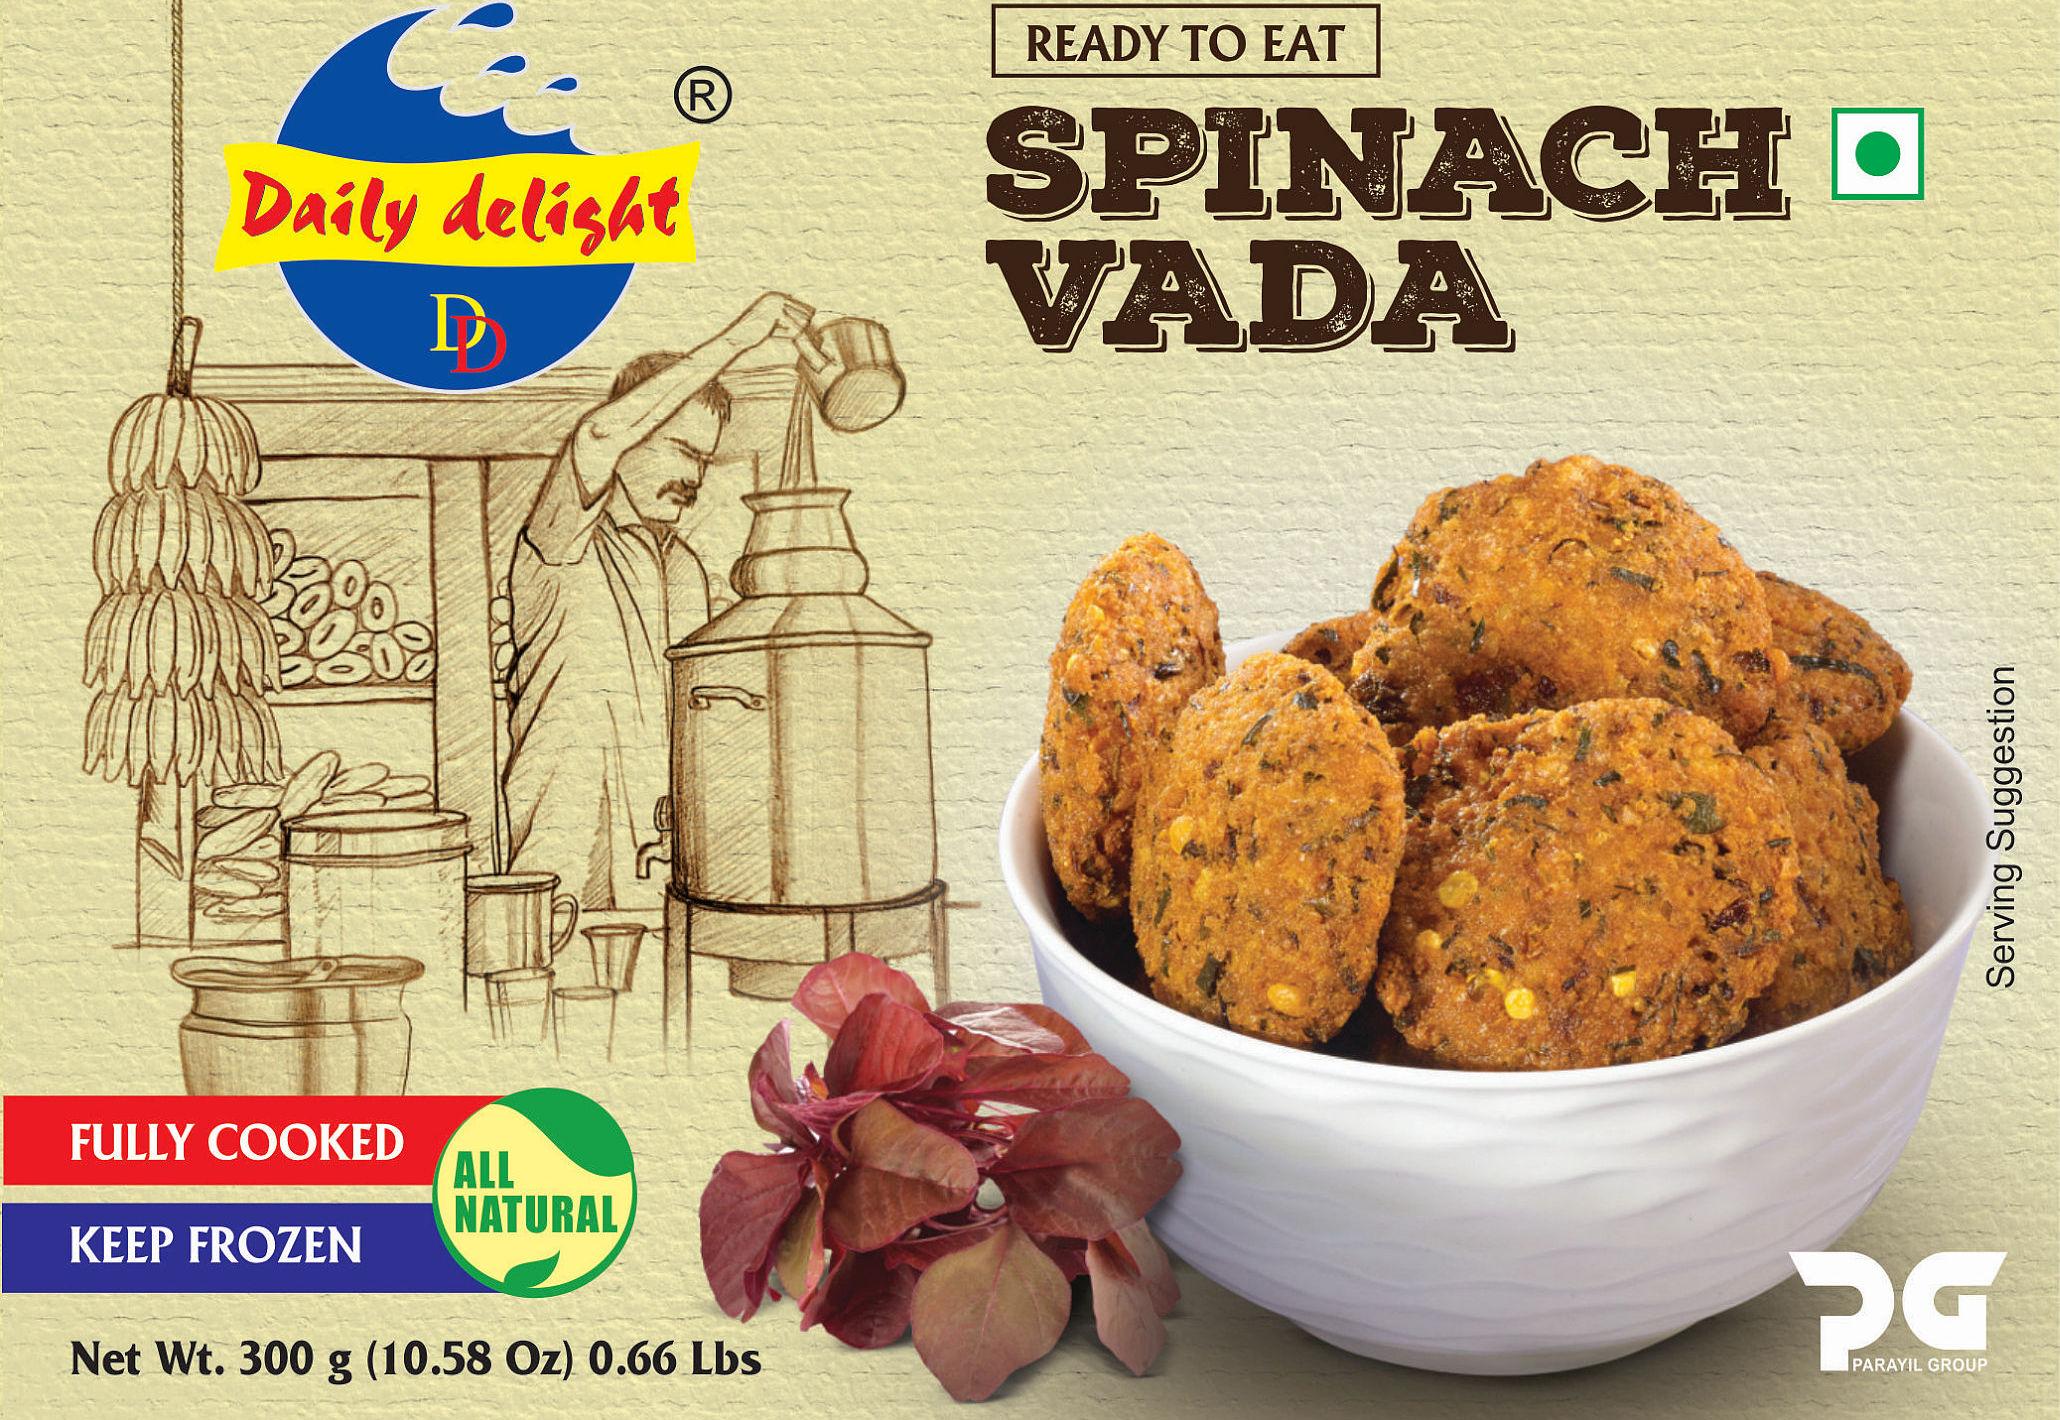 Daily Delight Spinach Vada